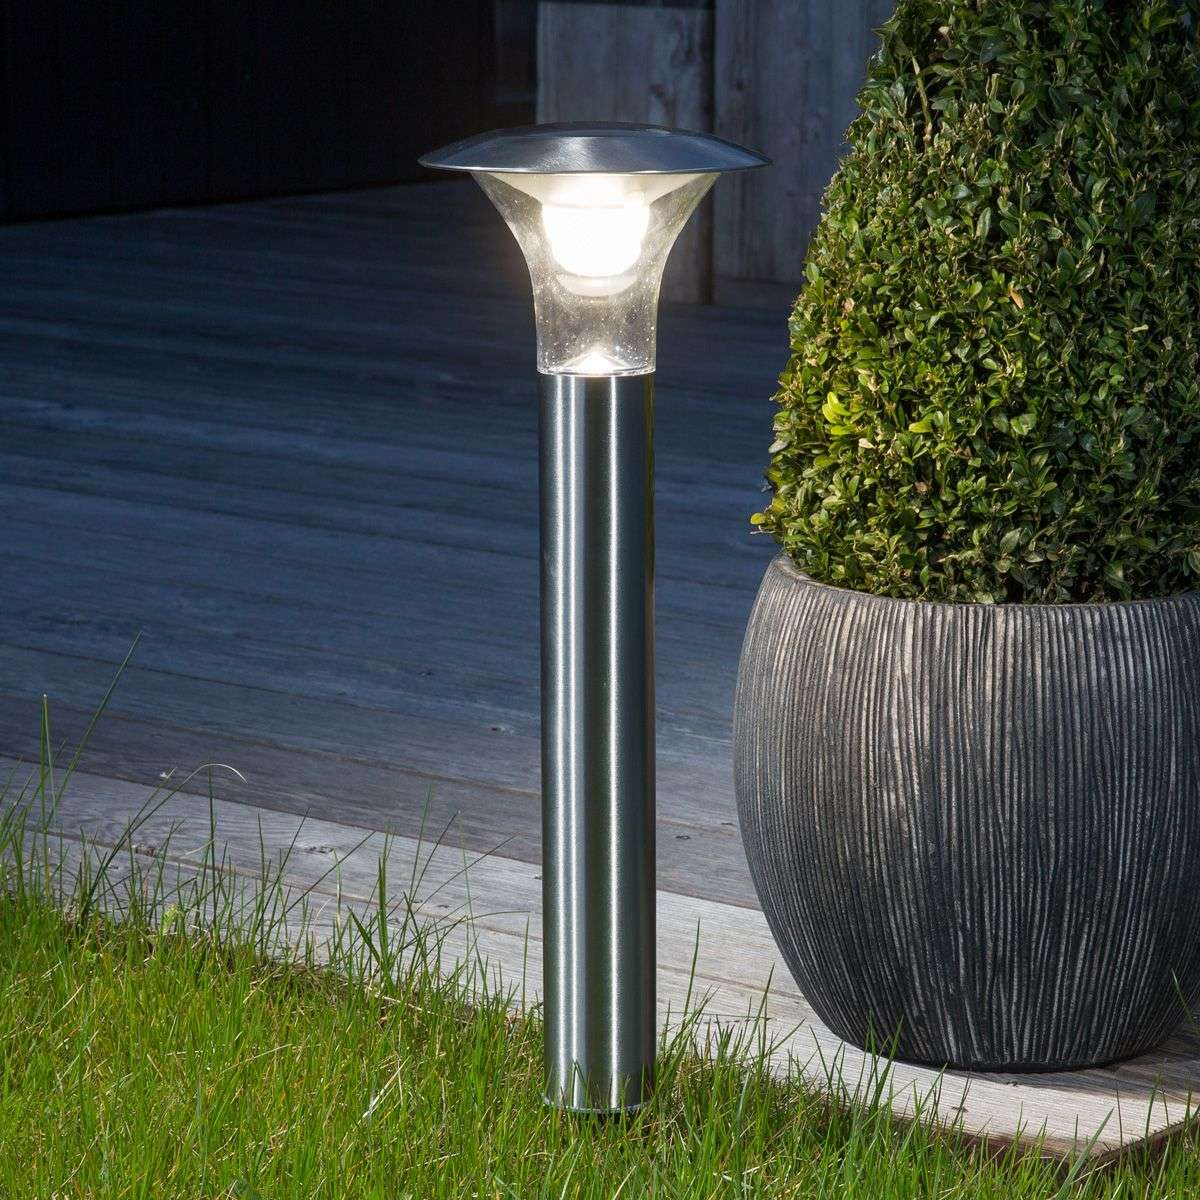 Bodemankerlamp Jolin met LED, zonne-energie-9945062-31